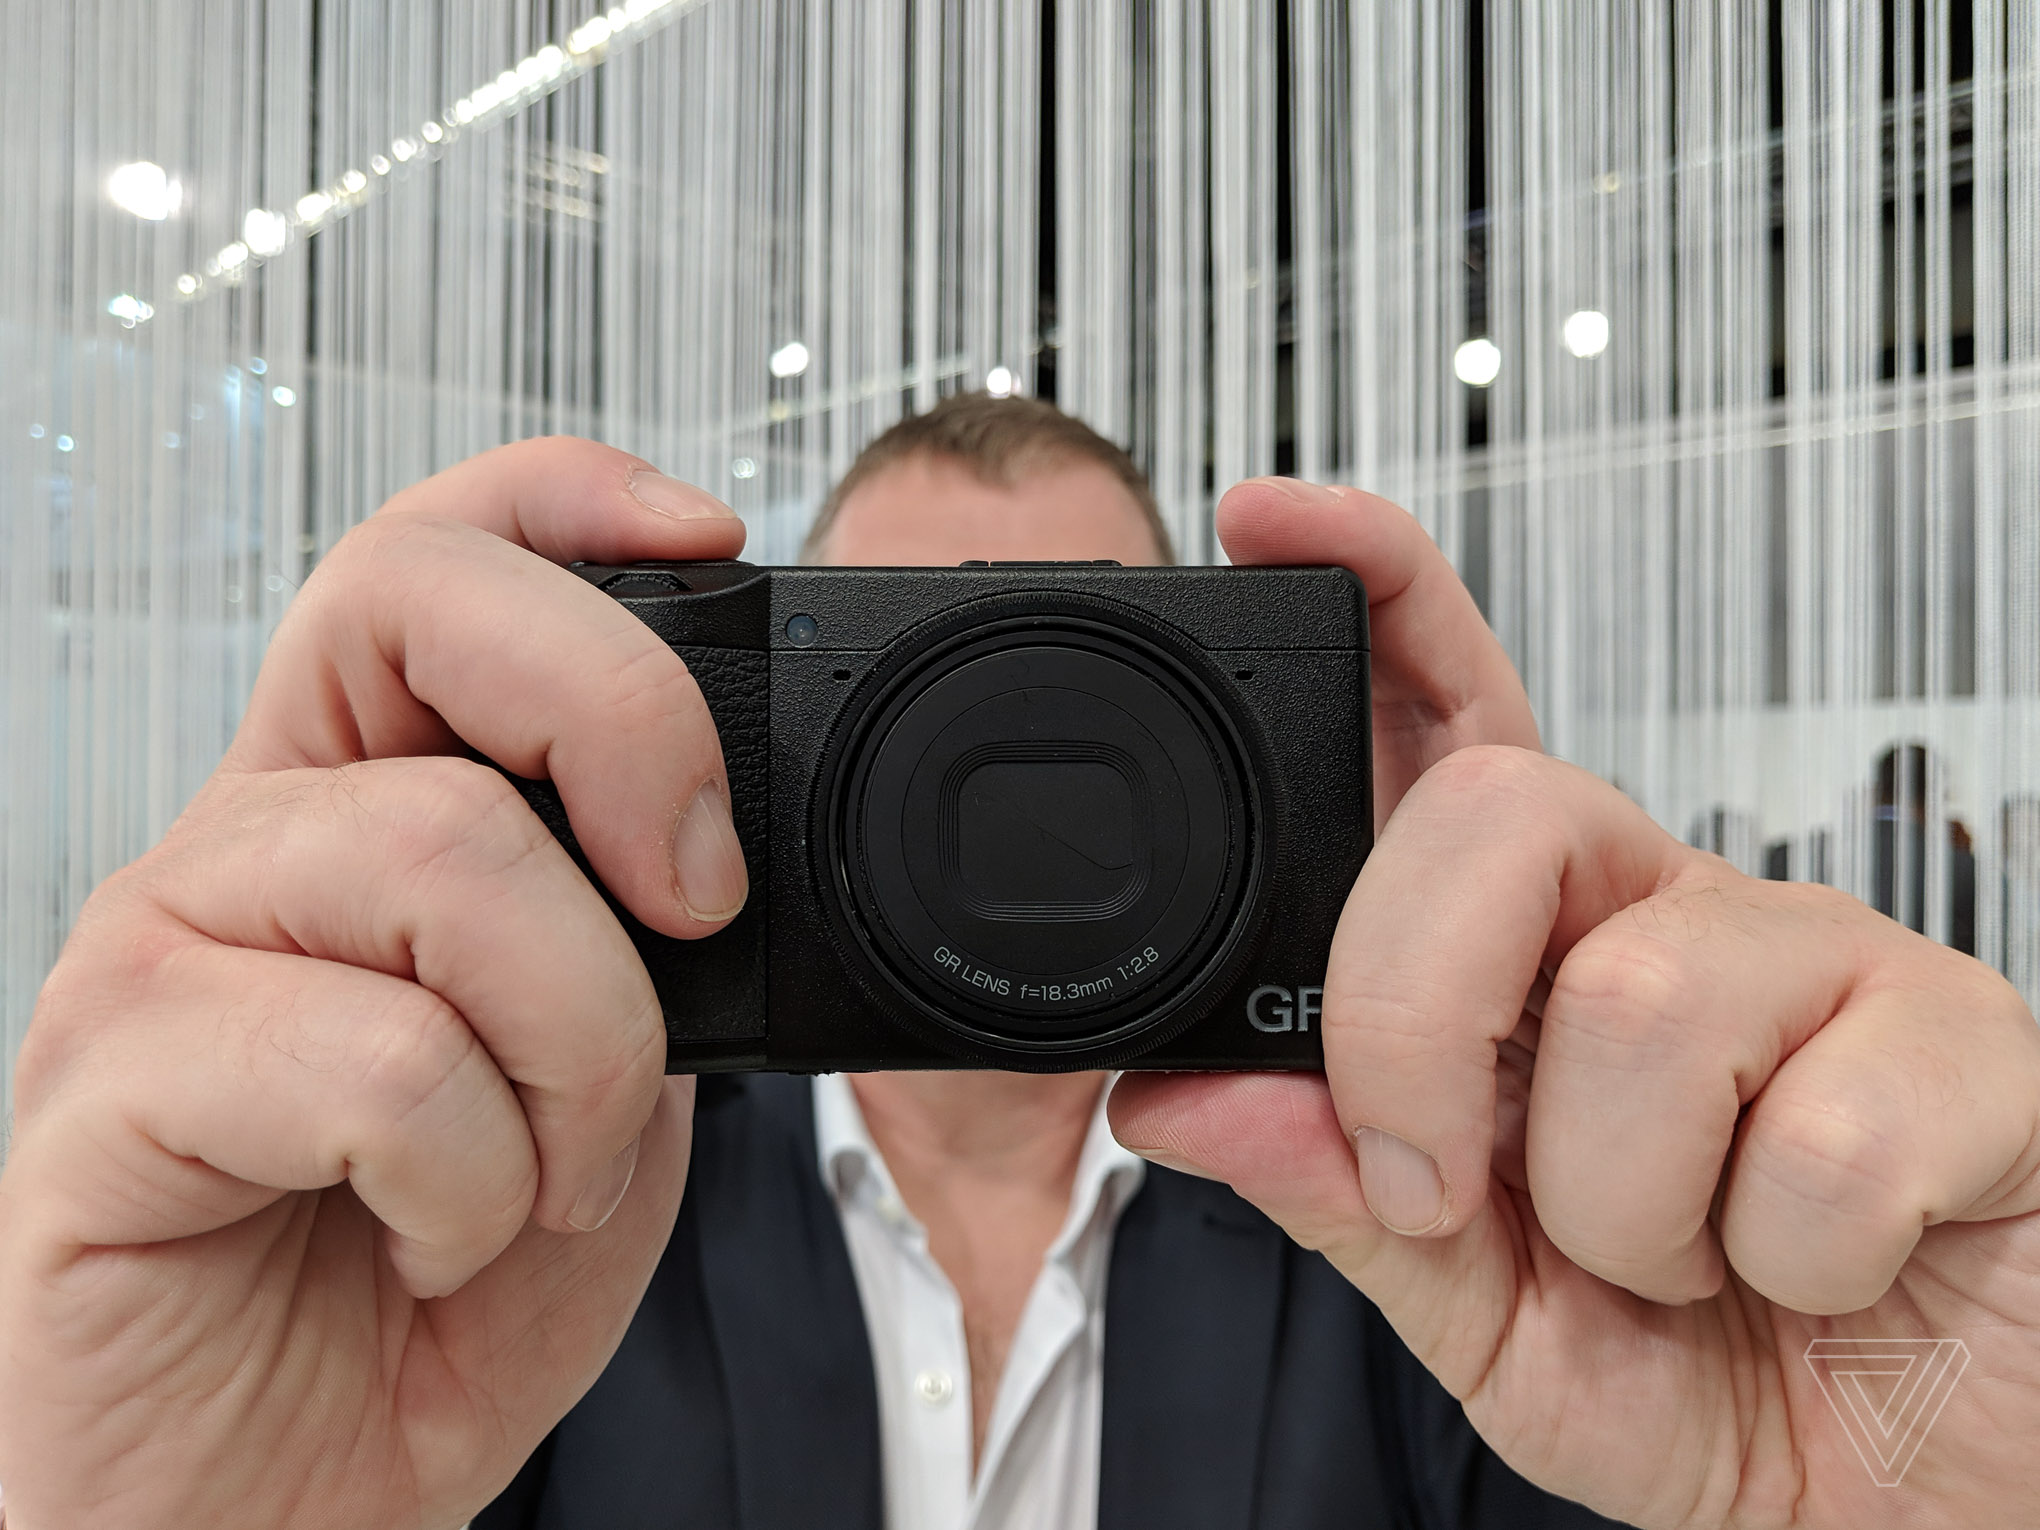 Ricoh's GRIII camera is just tiny enough to survive the